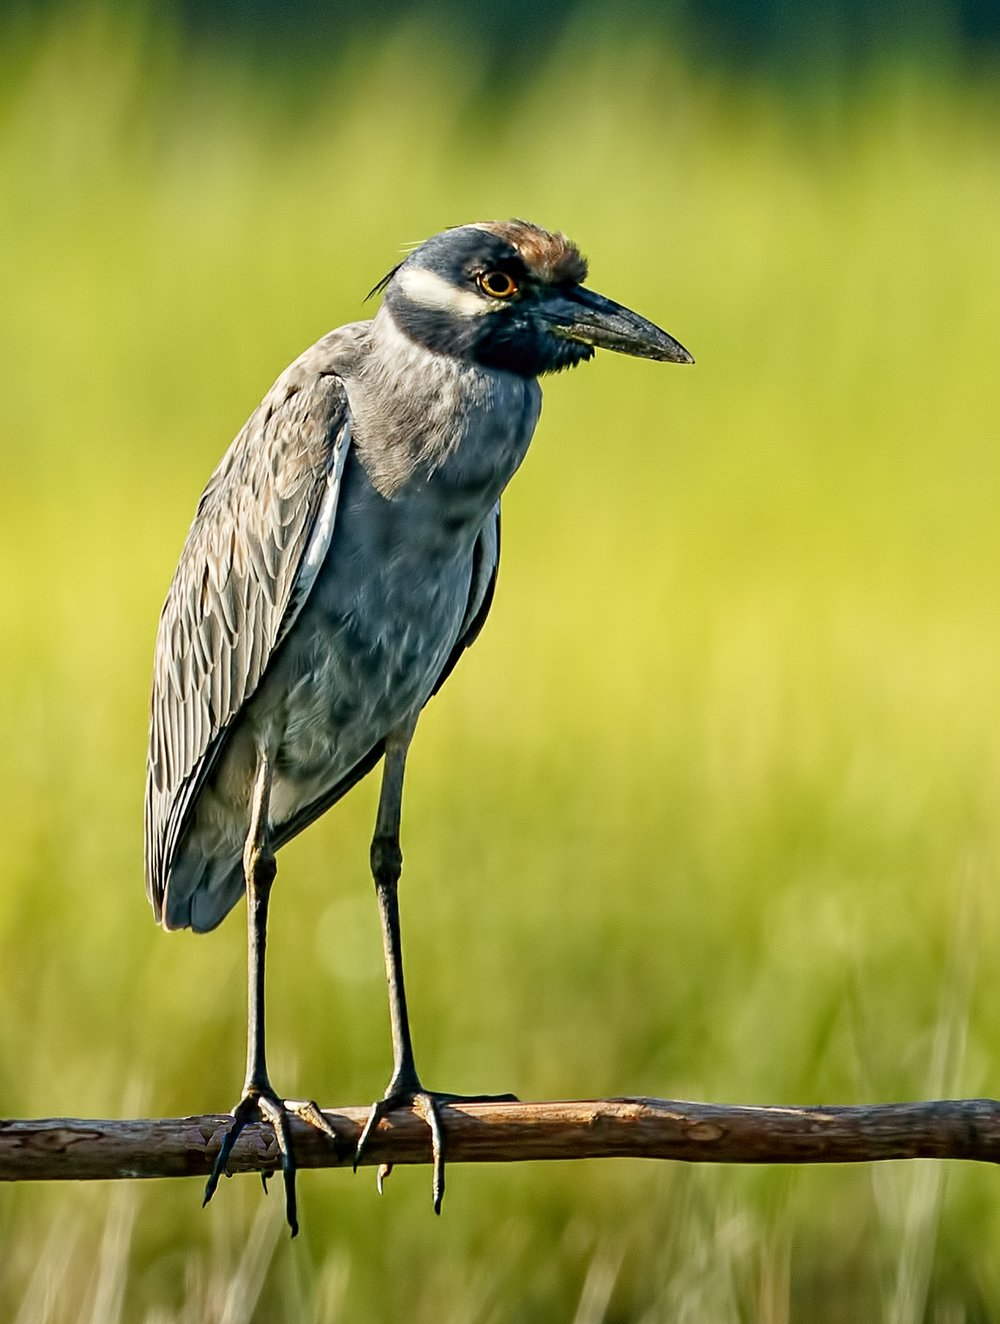 George Sr, the patriarch of the Yellow-Crowned Night Heron family poses on a new perch my neighbor set up for me.